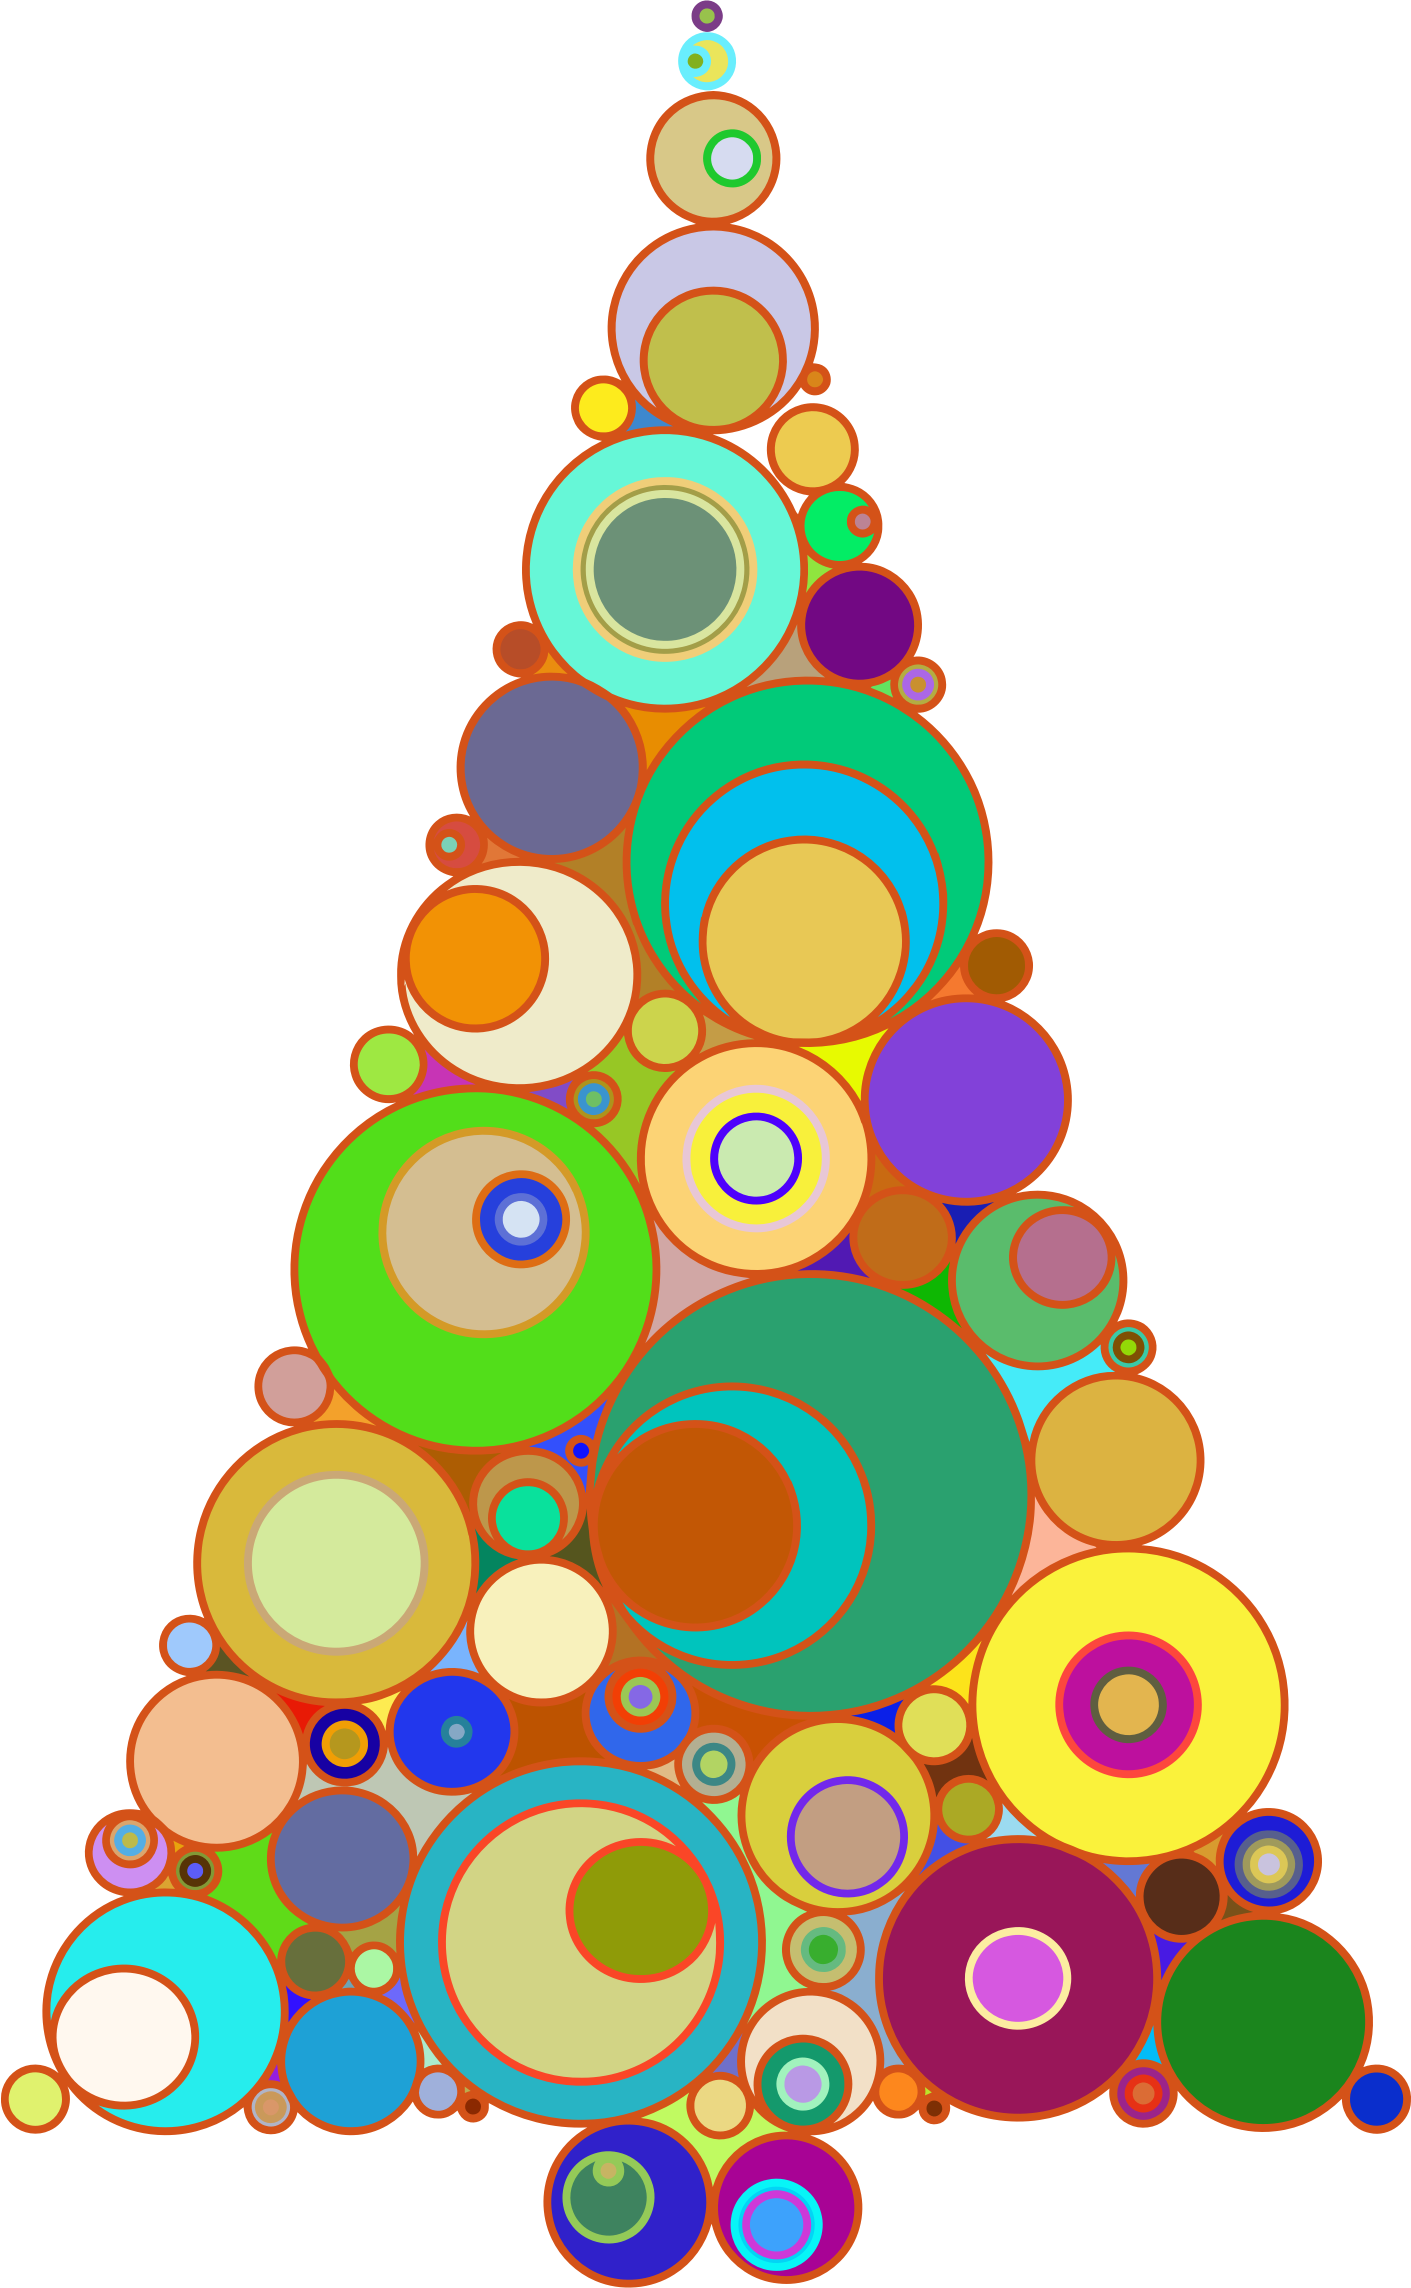 Abstract christmas tree clipart graphic free library Clipart - Colorful Abstract Circles Christmas Tree graphic free library